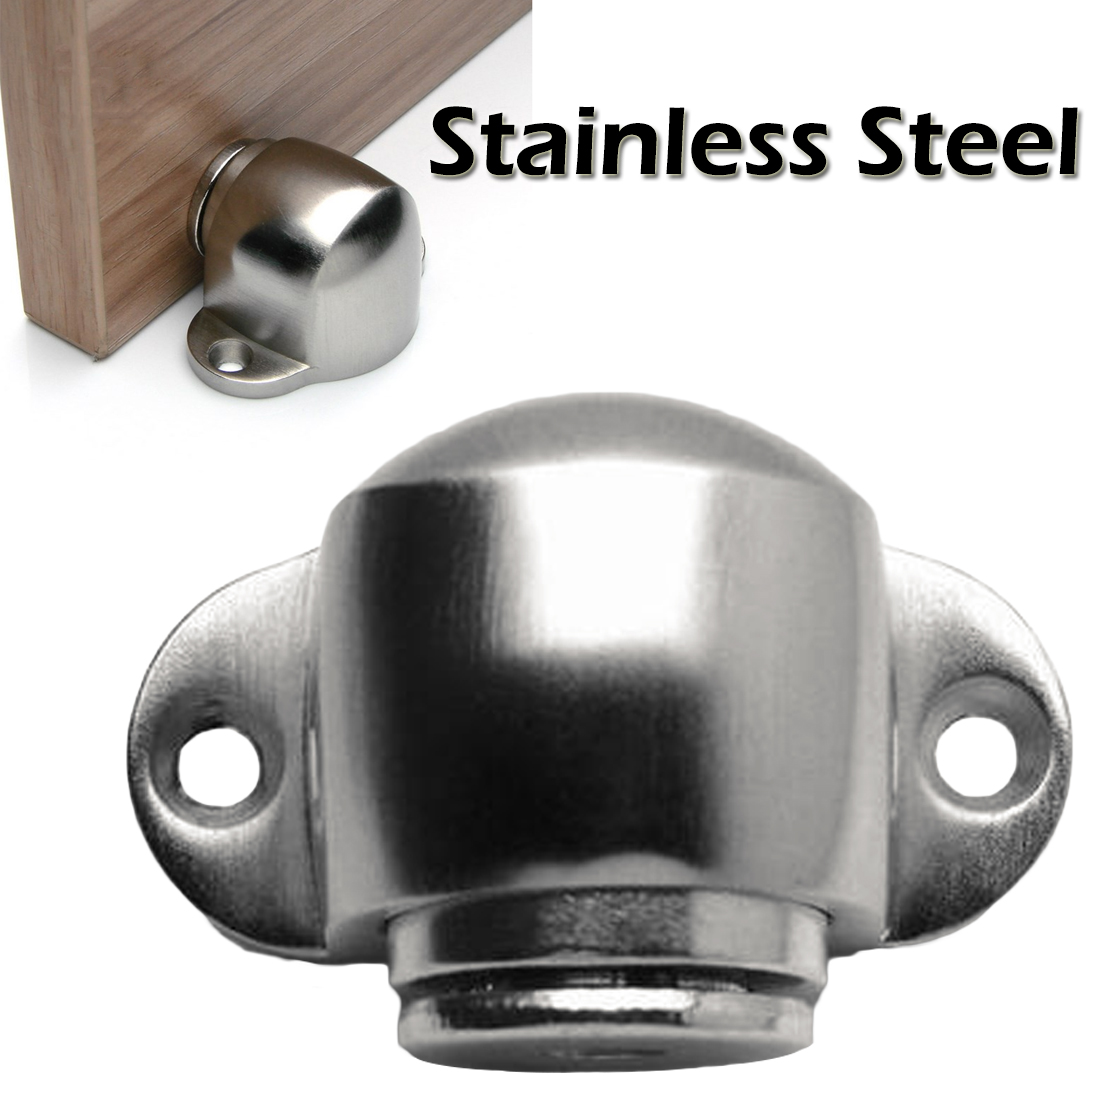 Stainless Steel Strong Magnetic Door Stopper Suction Gate Supporting Hardware Powerful Mini Door Stoper  with Catch Screw MountStainless Steel Strong Magnetic Door Stopper Suction Gate Supporting Hardware Powerful Mini Door Stoper  with Catch Screw Mount